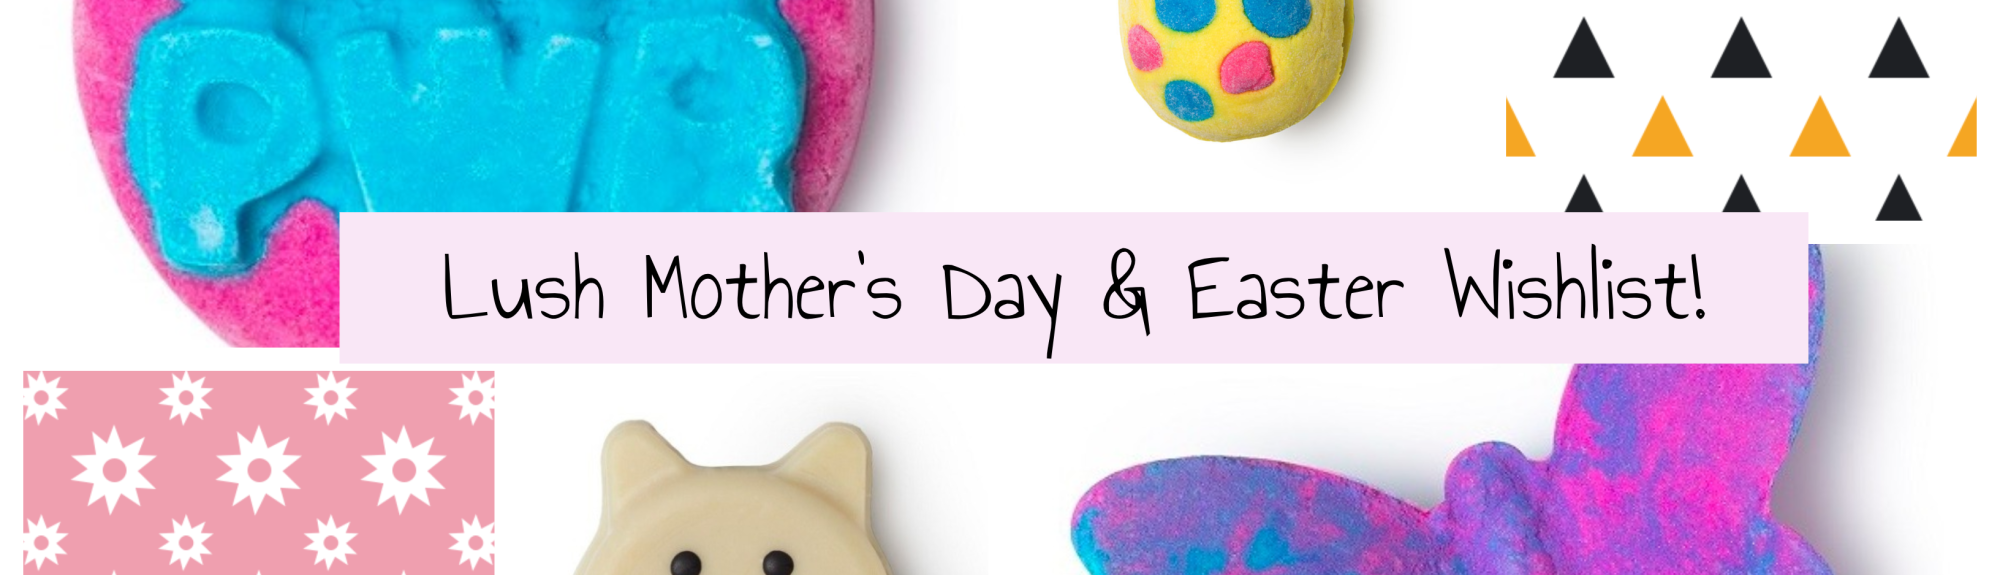 Lush Mothers Day & Easter Wishlist